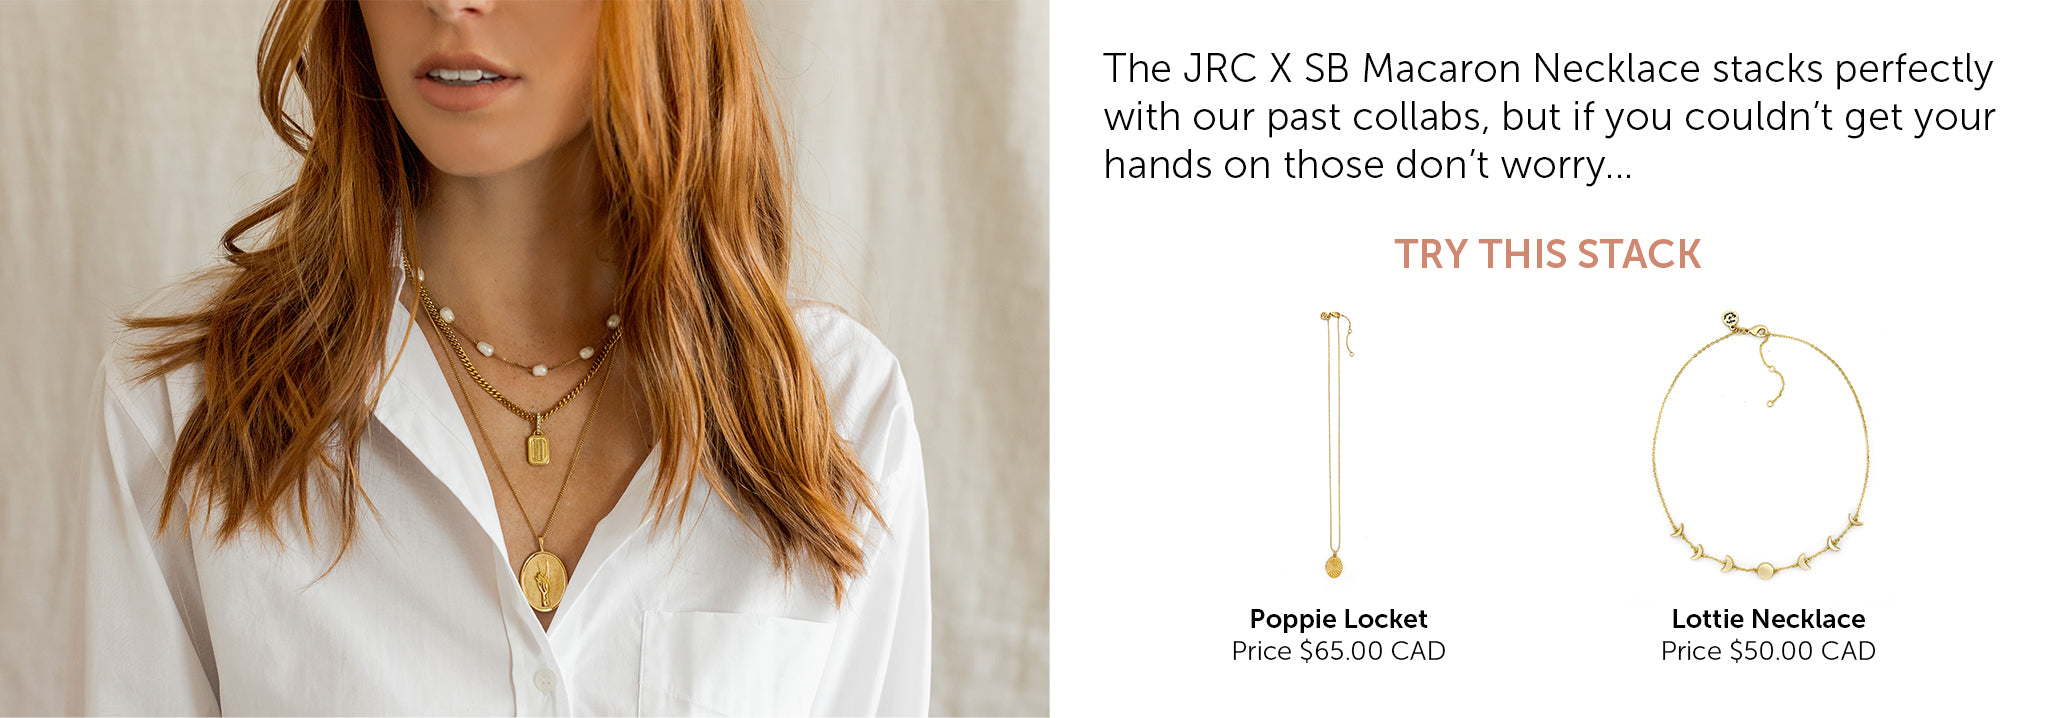 JRC X SB Necklace Stacking Ideas